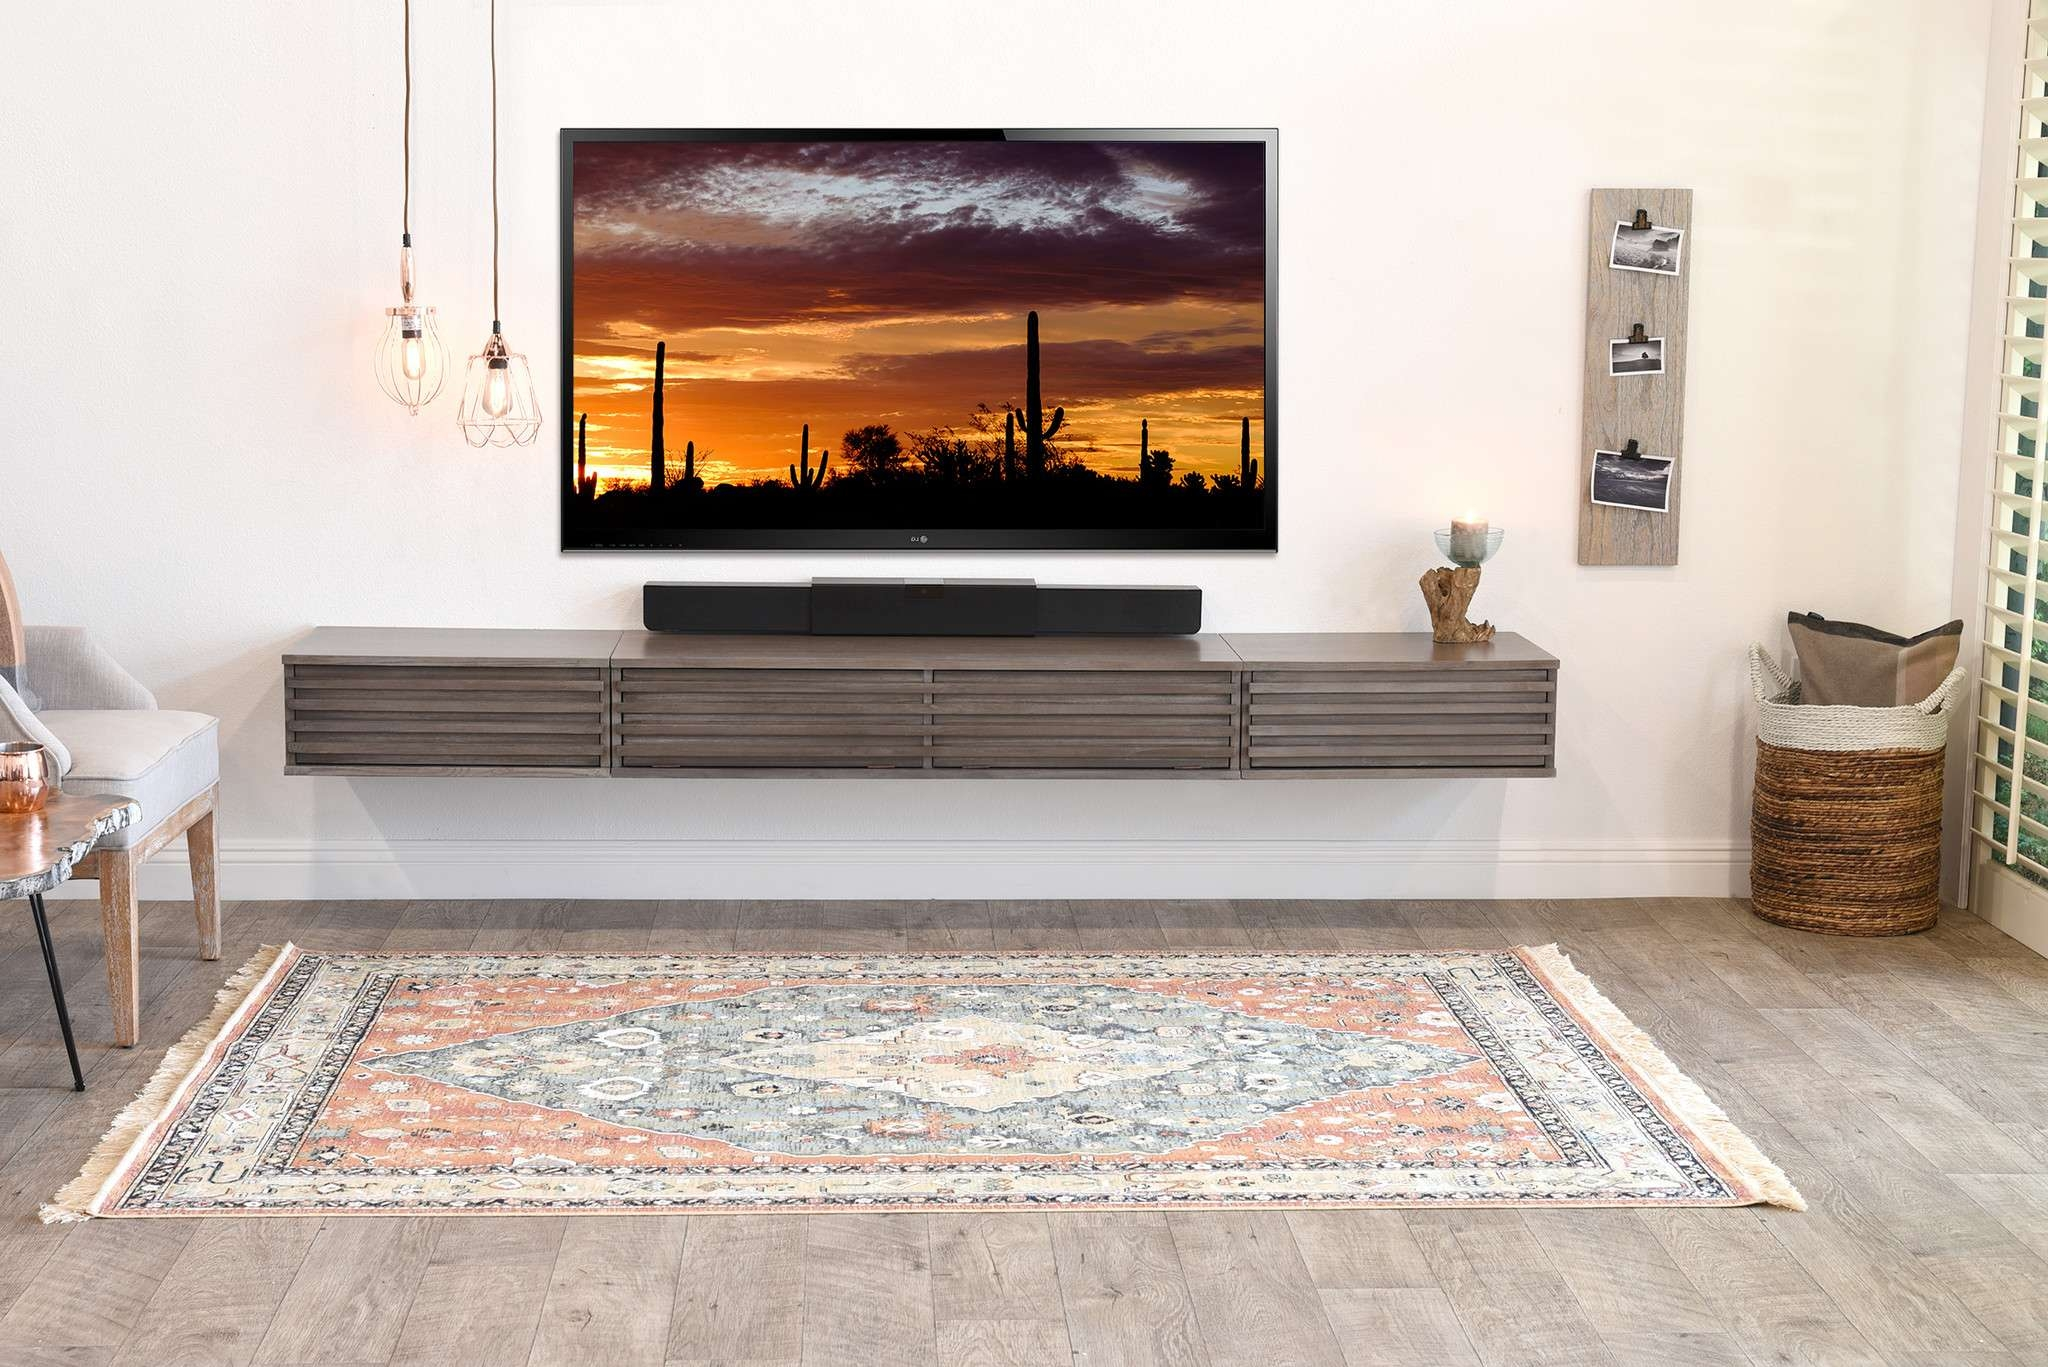 Shelves : Marvelous Ideas Floating Wall Mount Tv Stand Lotus And Pertaining To Modern Wall Mount Tv Stands (View 7 of 15)